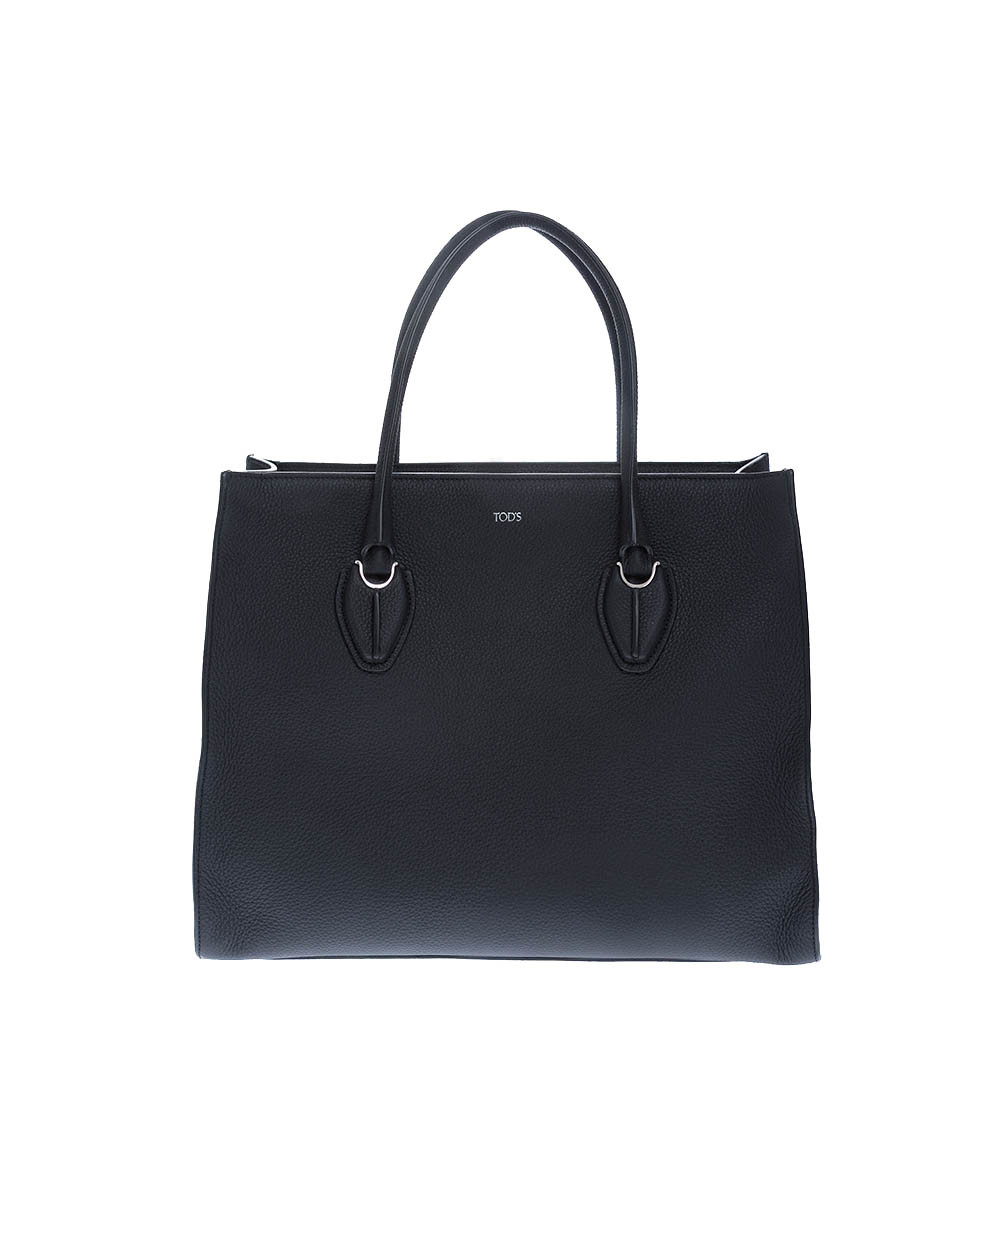 """Shopping"" leather bag with twho handles and silver-tone metal details"